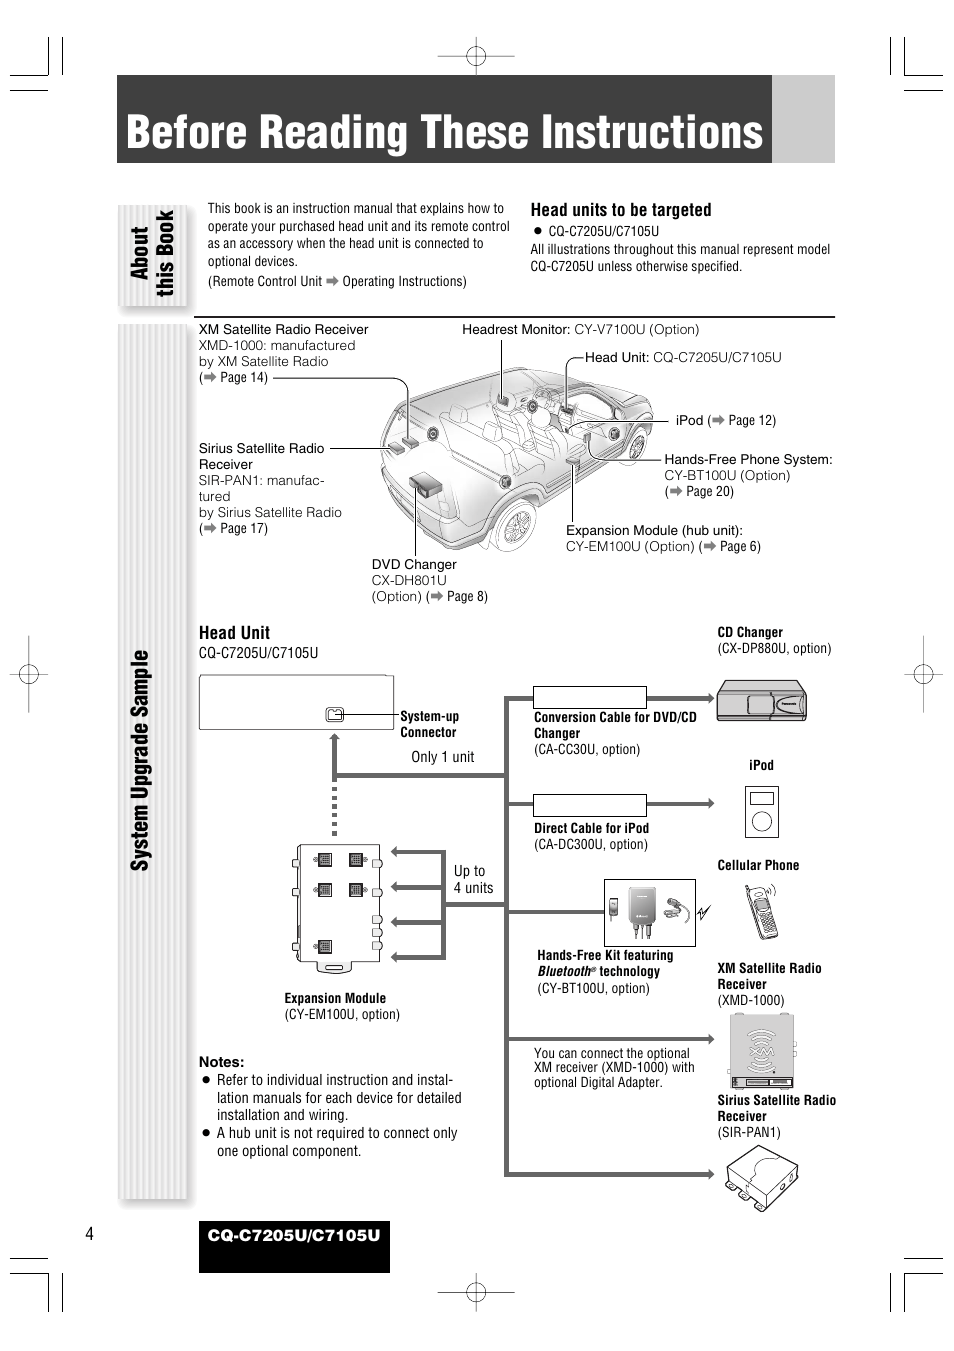 hight resolution of panasonic cq c7105u wiring diagram schema diagram databasebefore reading these instructions about this book